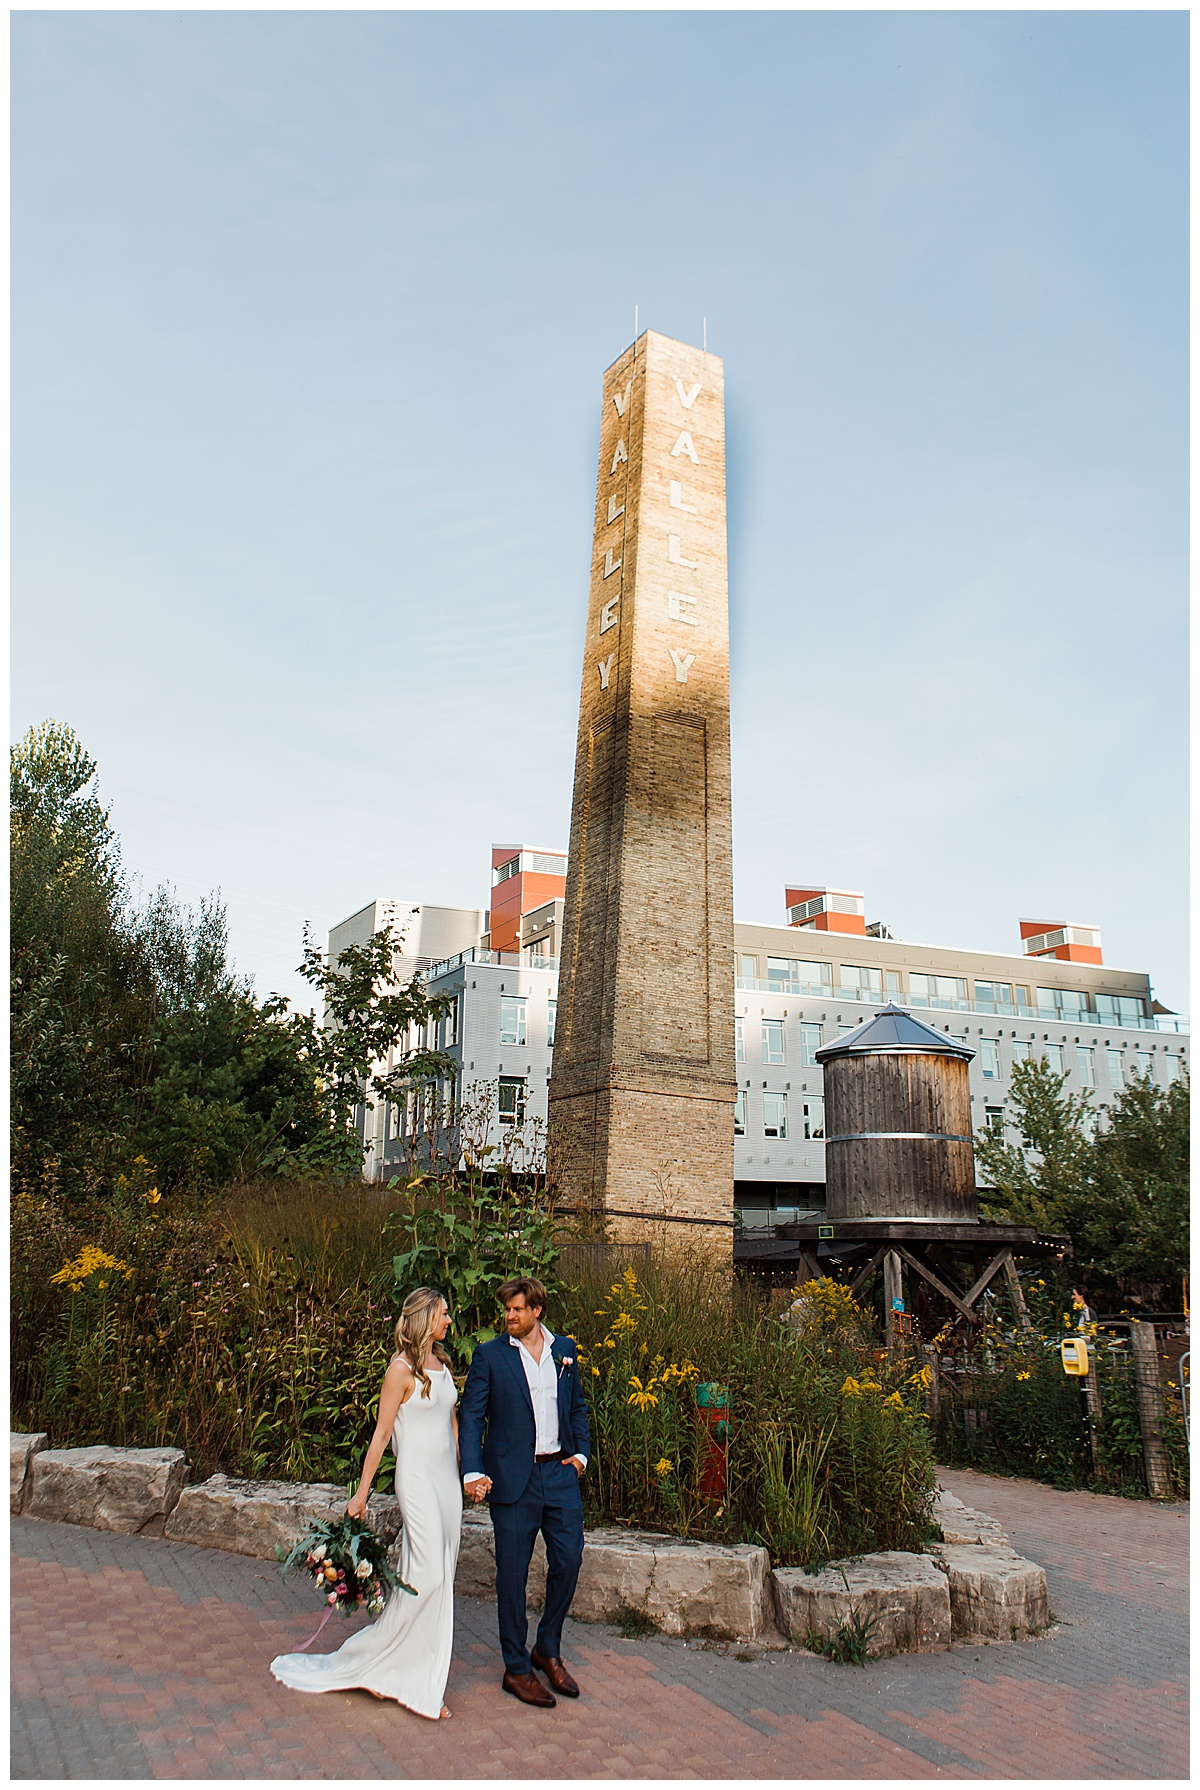 Bride and groom walking outside the jam factory Canada